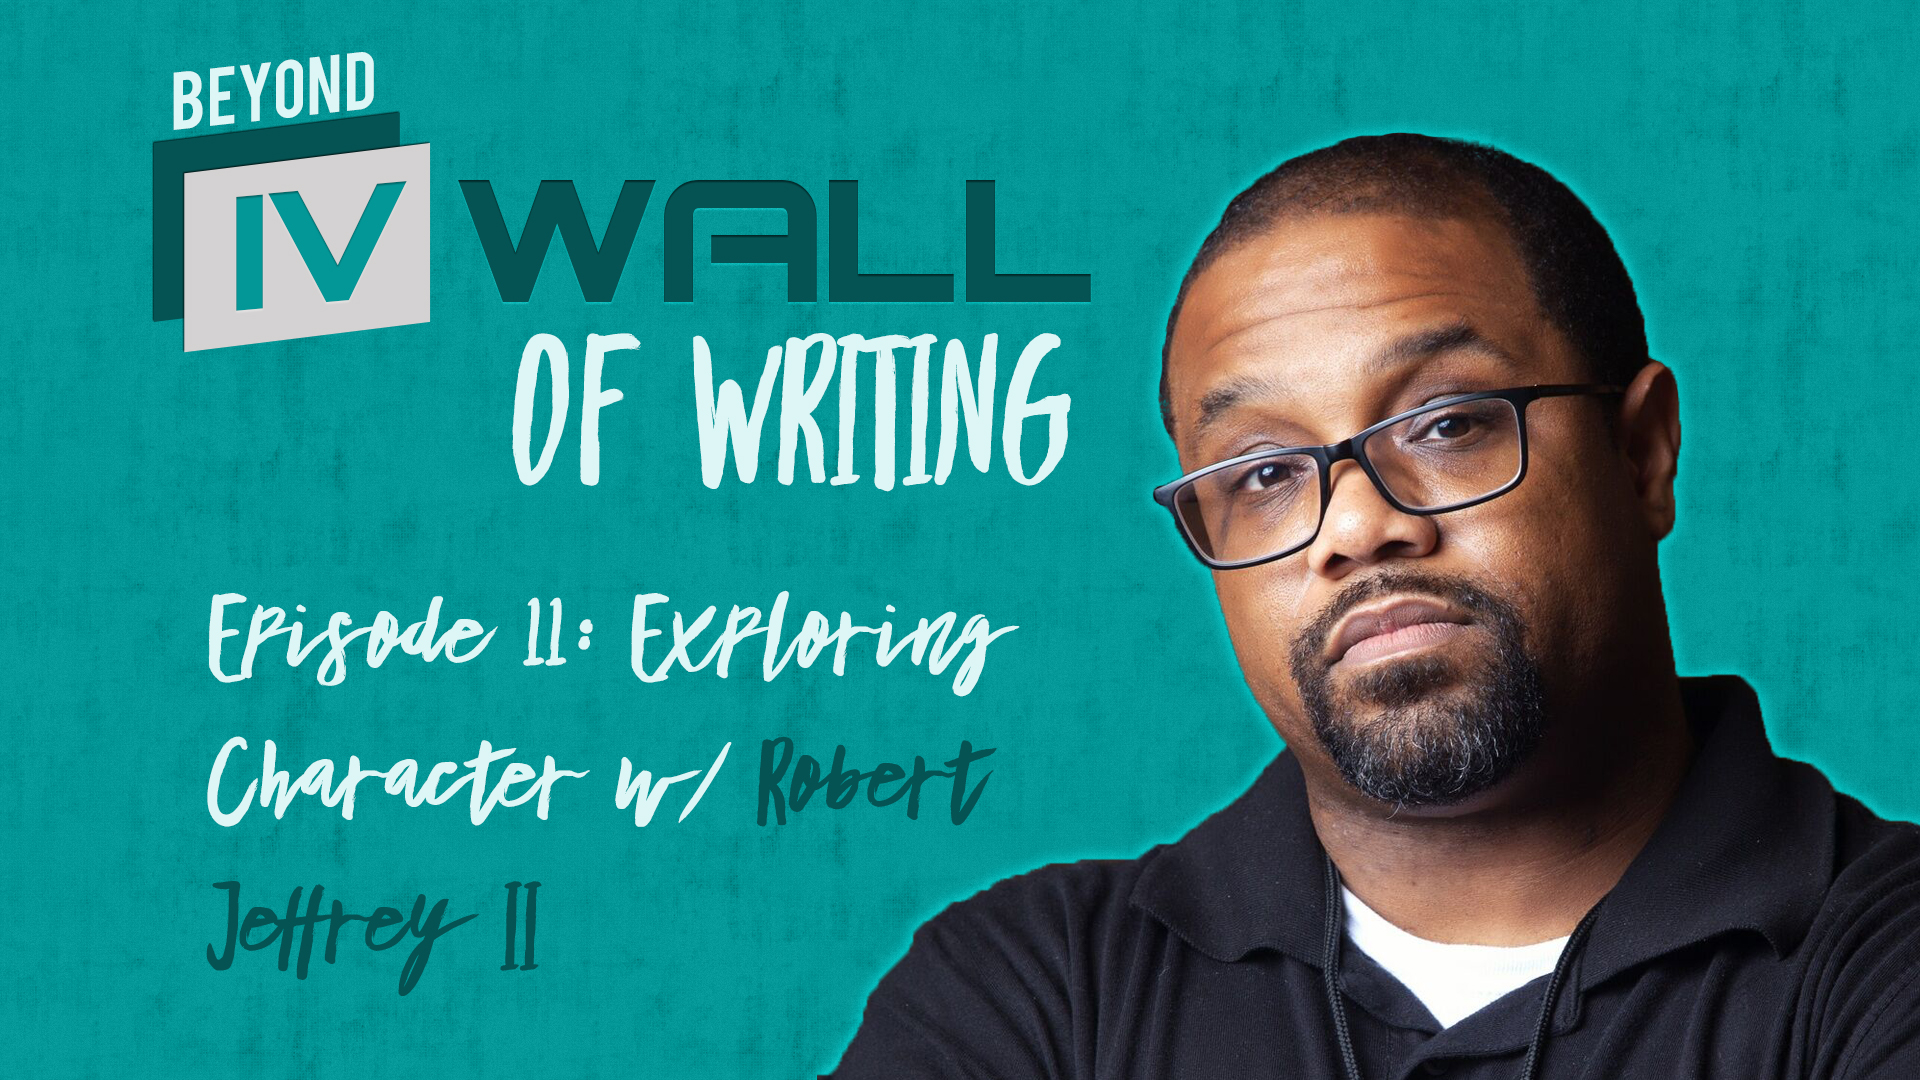 Beyond the IVWall of Writing Episode 11- Exploring Character with Robert Jeffrey II